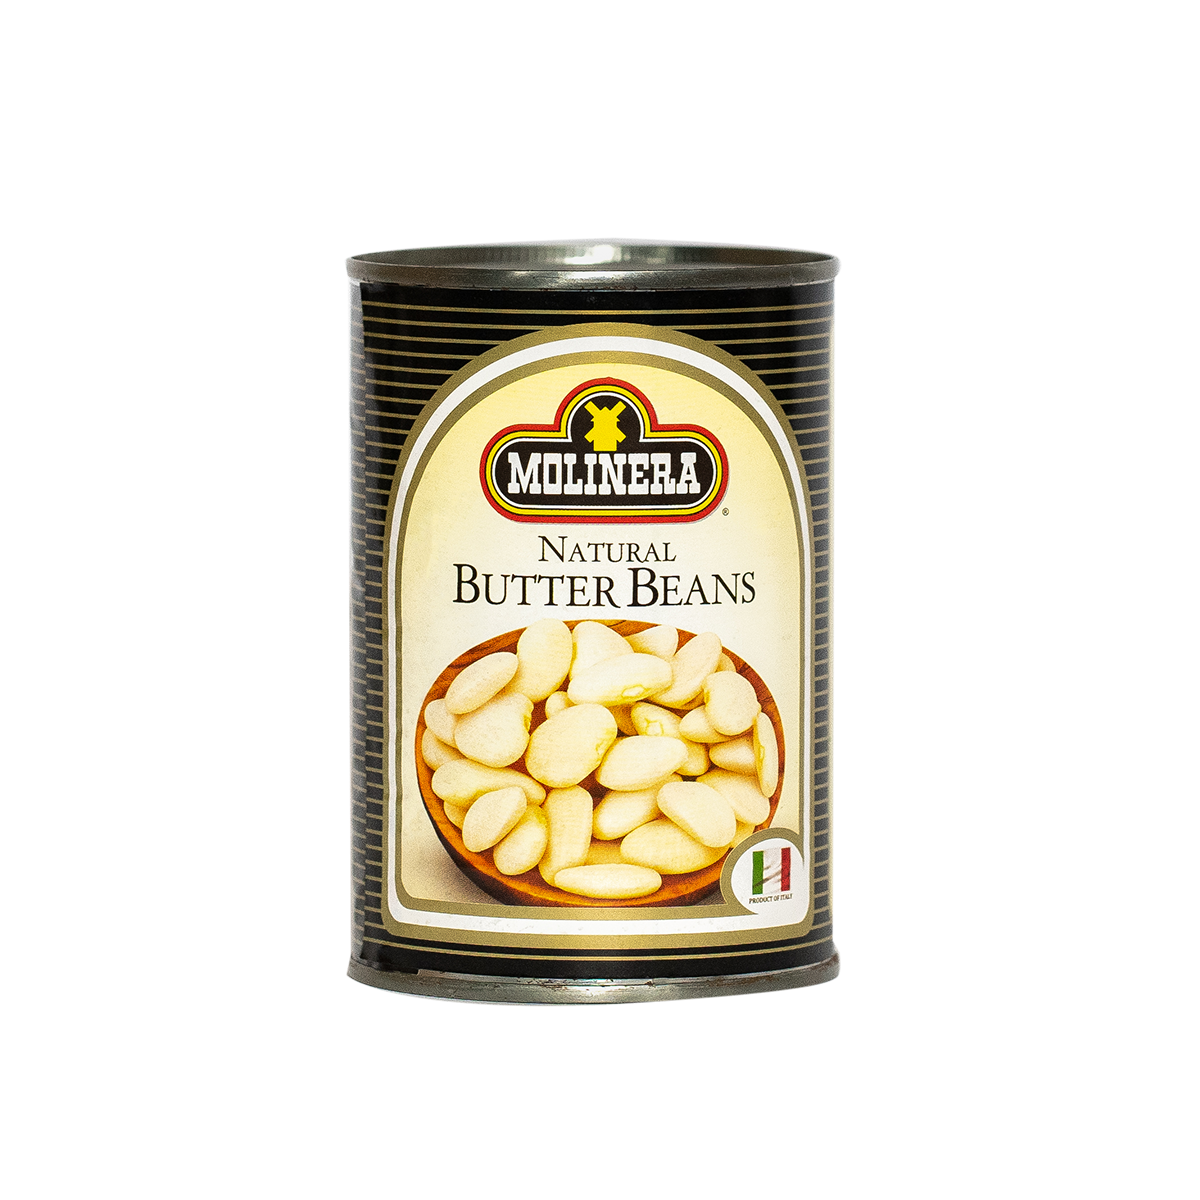 Molinera Natural Butter Beans